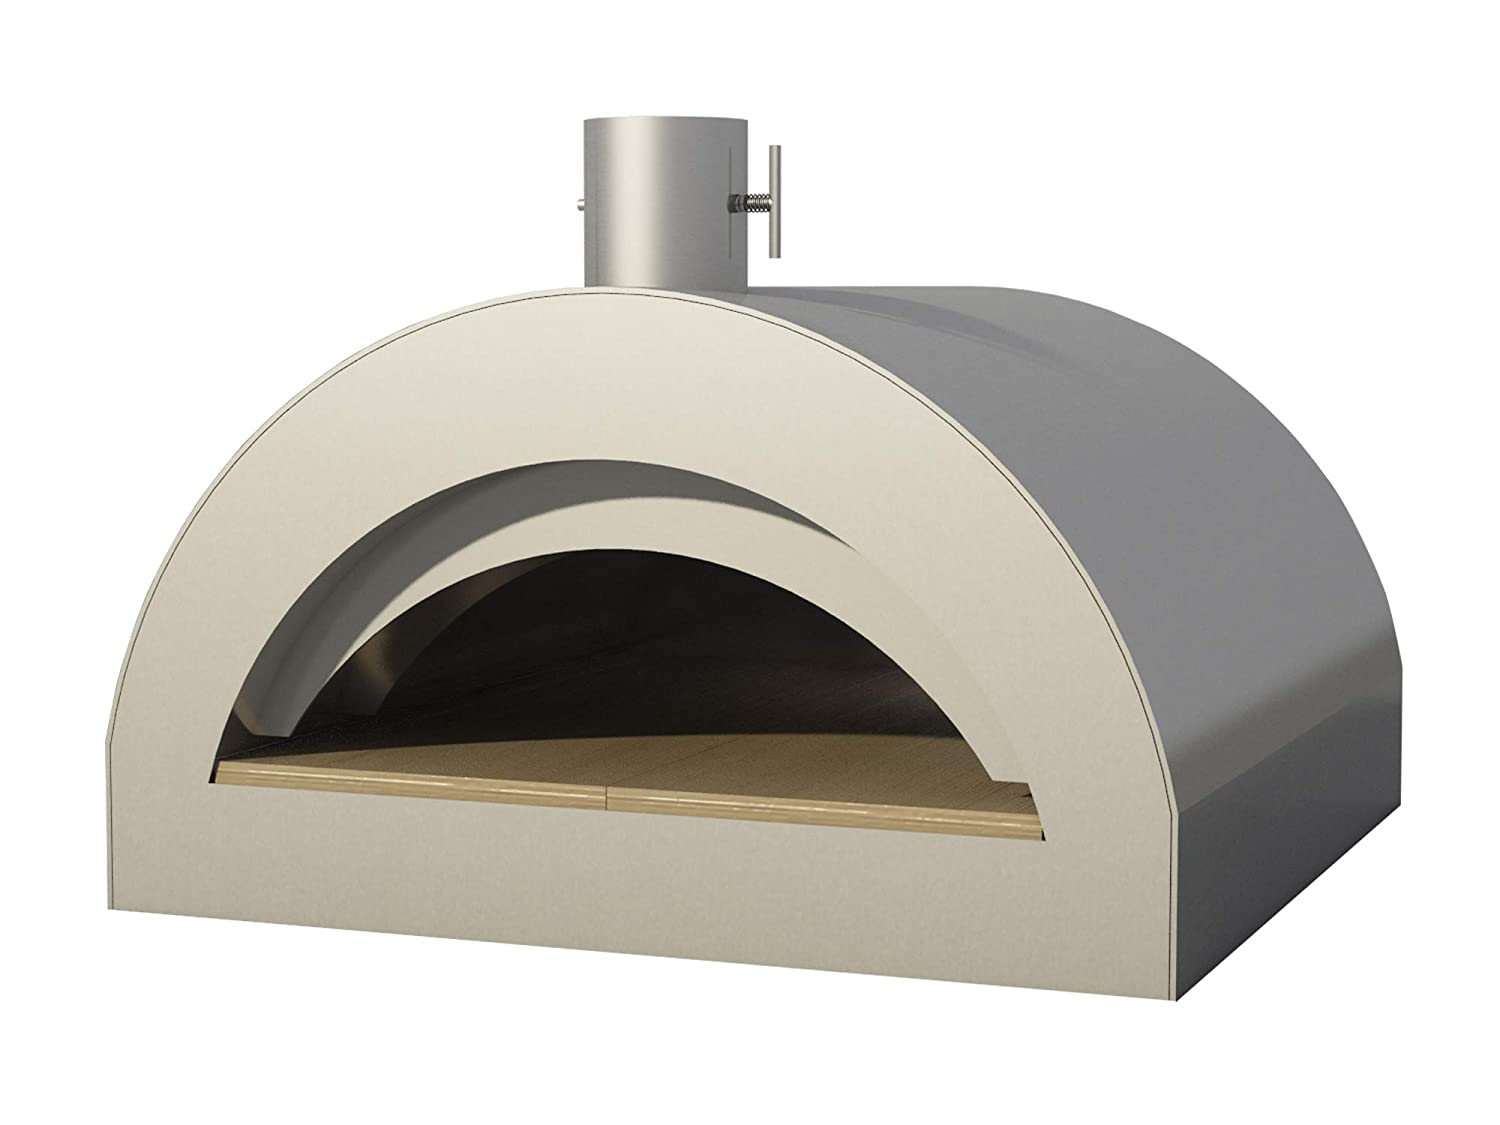 Metal Pizza Oven Plans DIY Outdoor Cooking Backyard Patio Party Bread Oven